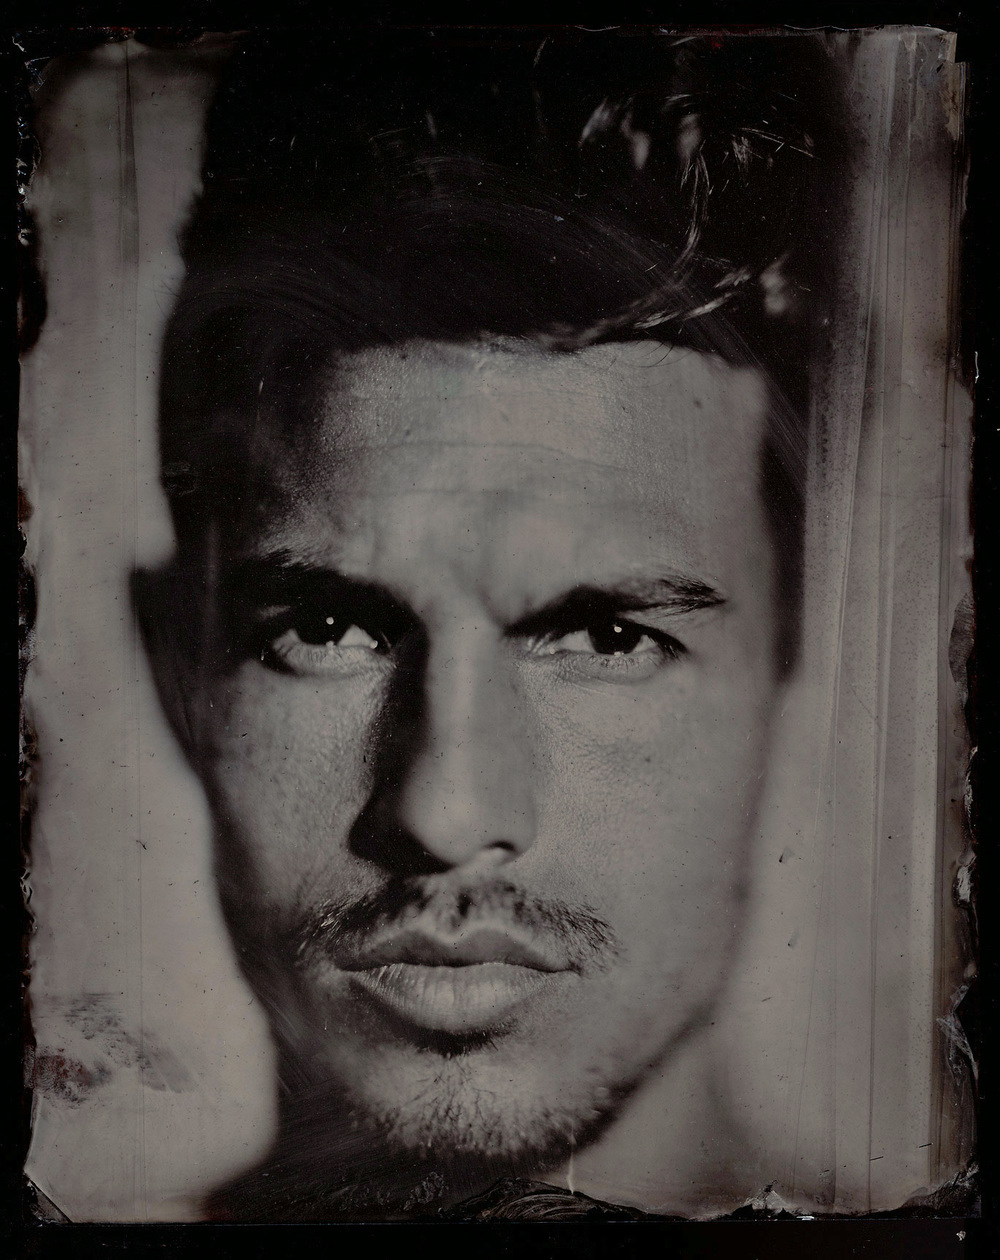 photographer-jamesweber-wetplate-portraits-00265.jpg